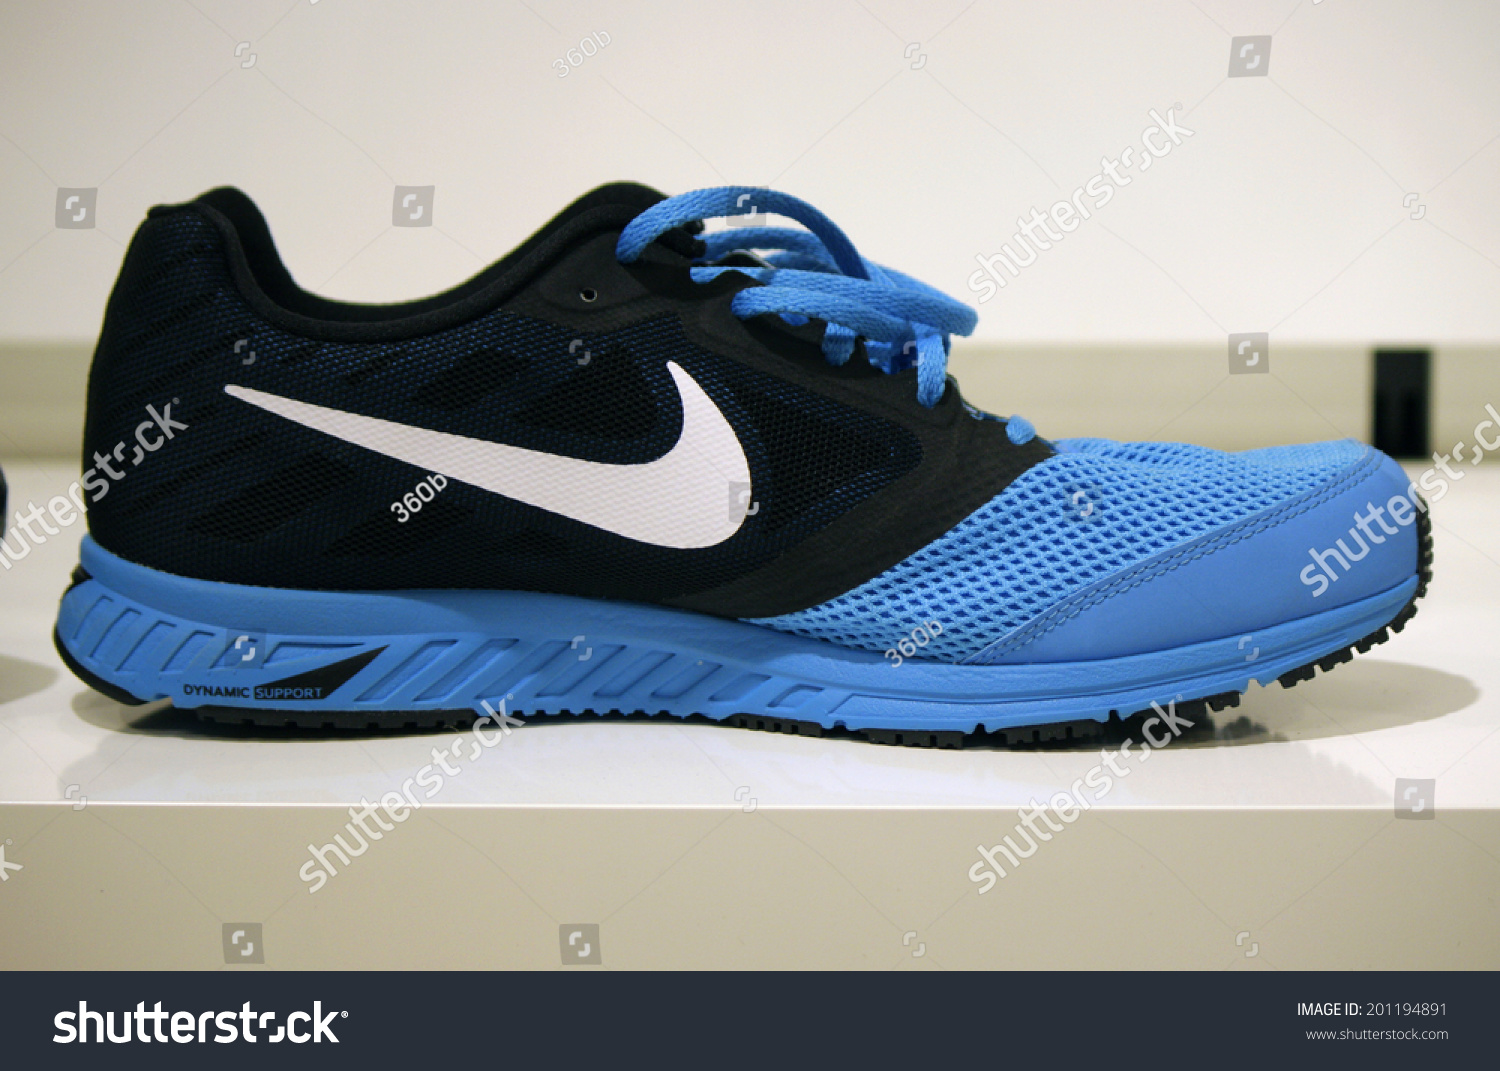 circa may 2014 berlin a nike running shoe stock. Black Bedroom Furniture Sets. Home Design Ideas